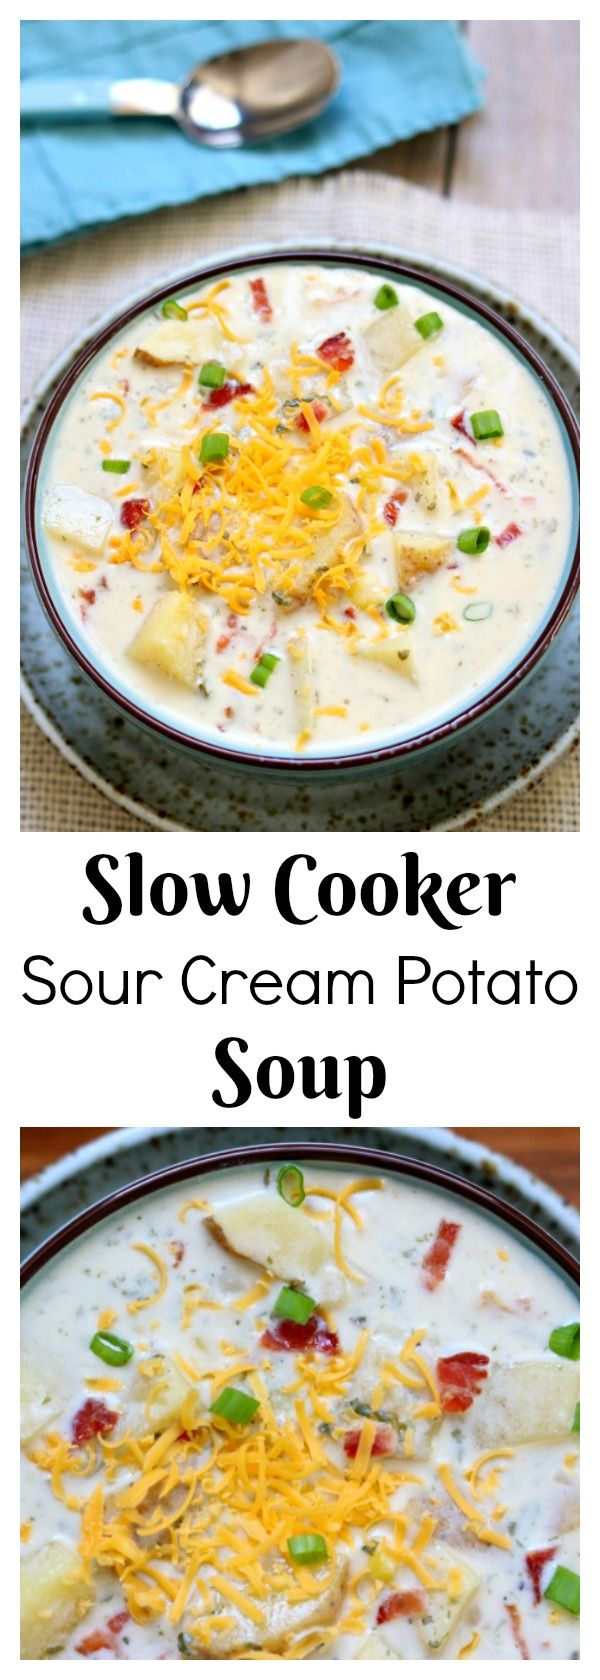 Slow Cooker Sour Cream Potato Bacon Soup–this crockpot soup has a creamy broth, juicy corn kernels, crispy bacon, grated cheddar, tangy cream cheese and sour cream and mild green onions. It is comfort in a bowl and is an easy dinner recipe that takes just minutes to put together.